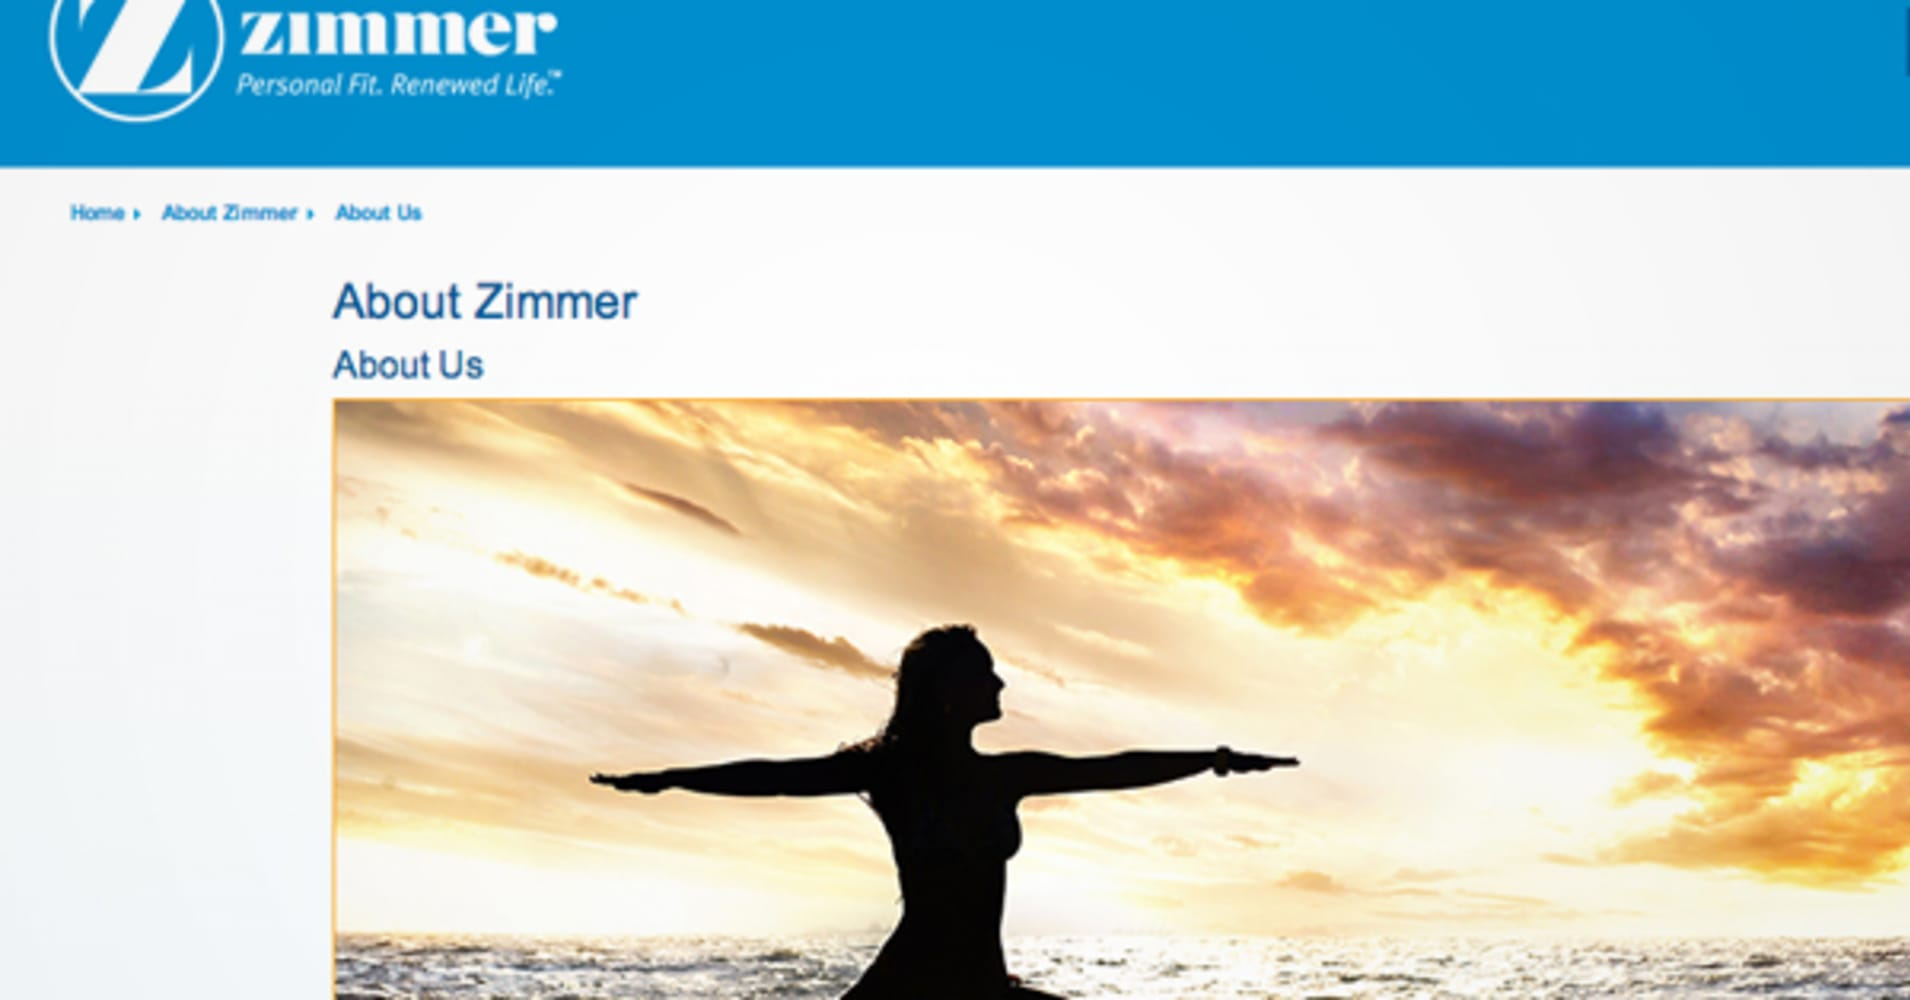 Zimmer holdings to combine with biomet in deal for Zimmer holdings